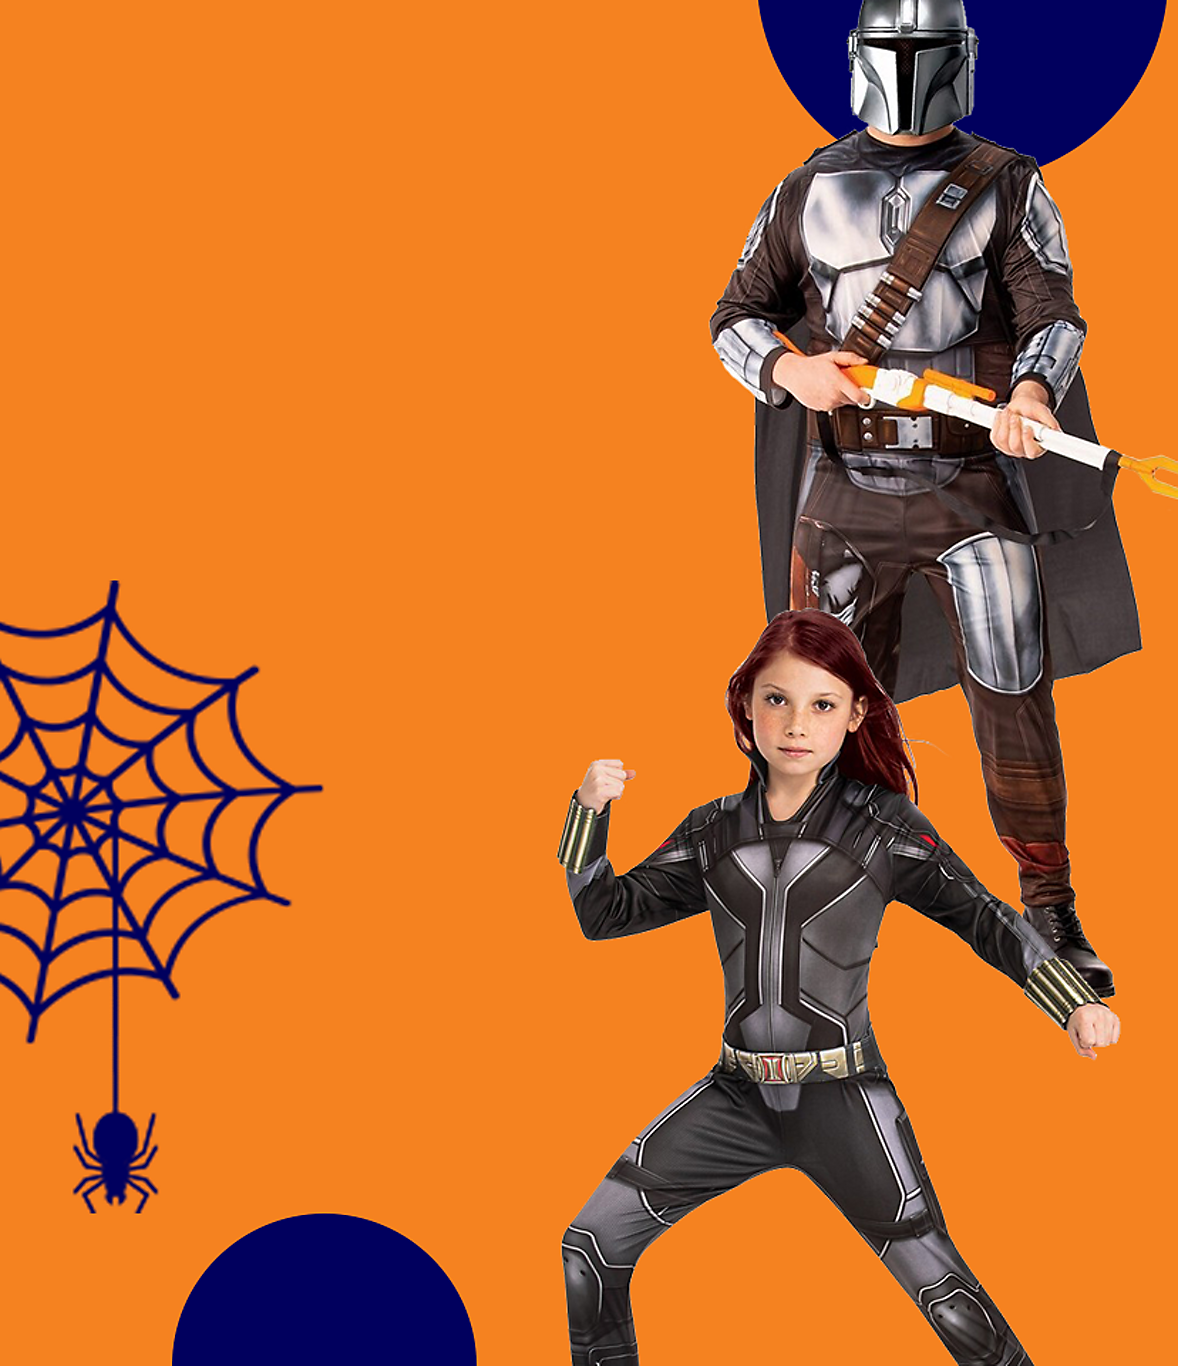 Get Halloween and character ready with our range of costumes